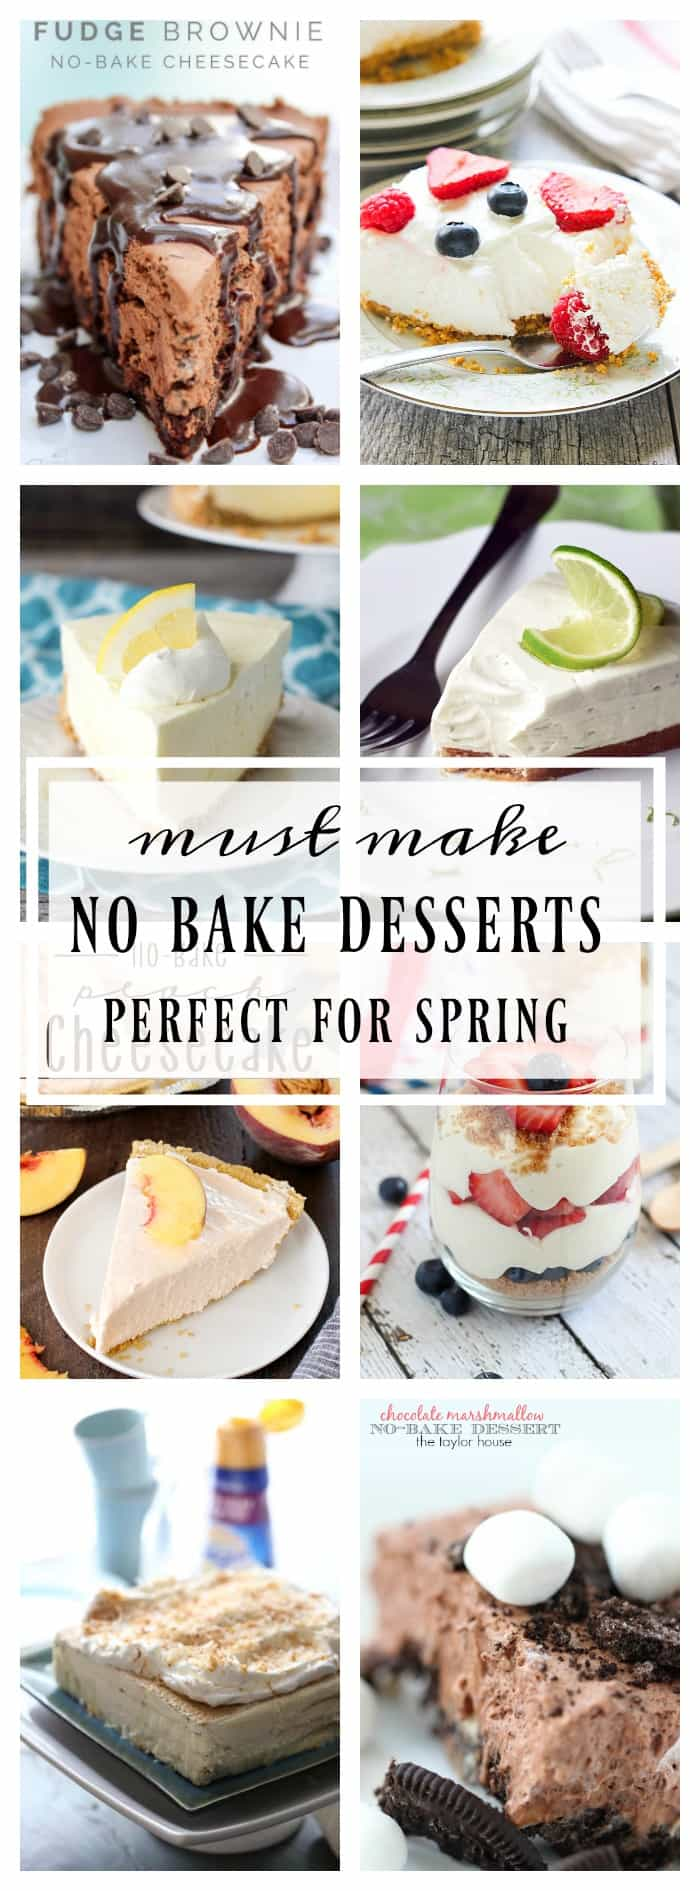 Warm weather is practically upon us, it's times to stock up on no bake recipes!